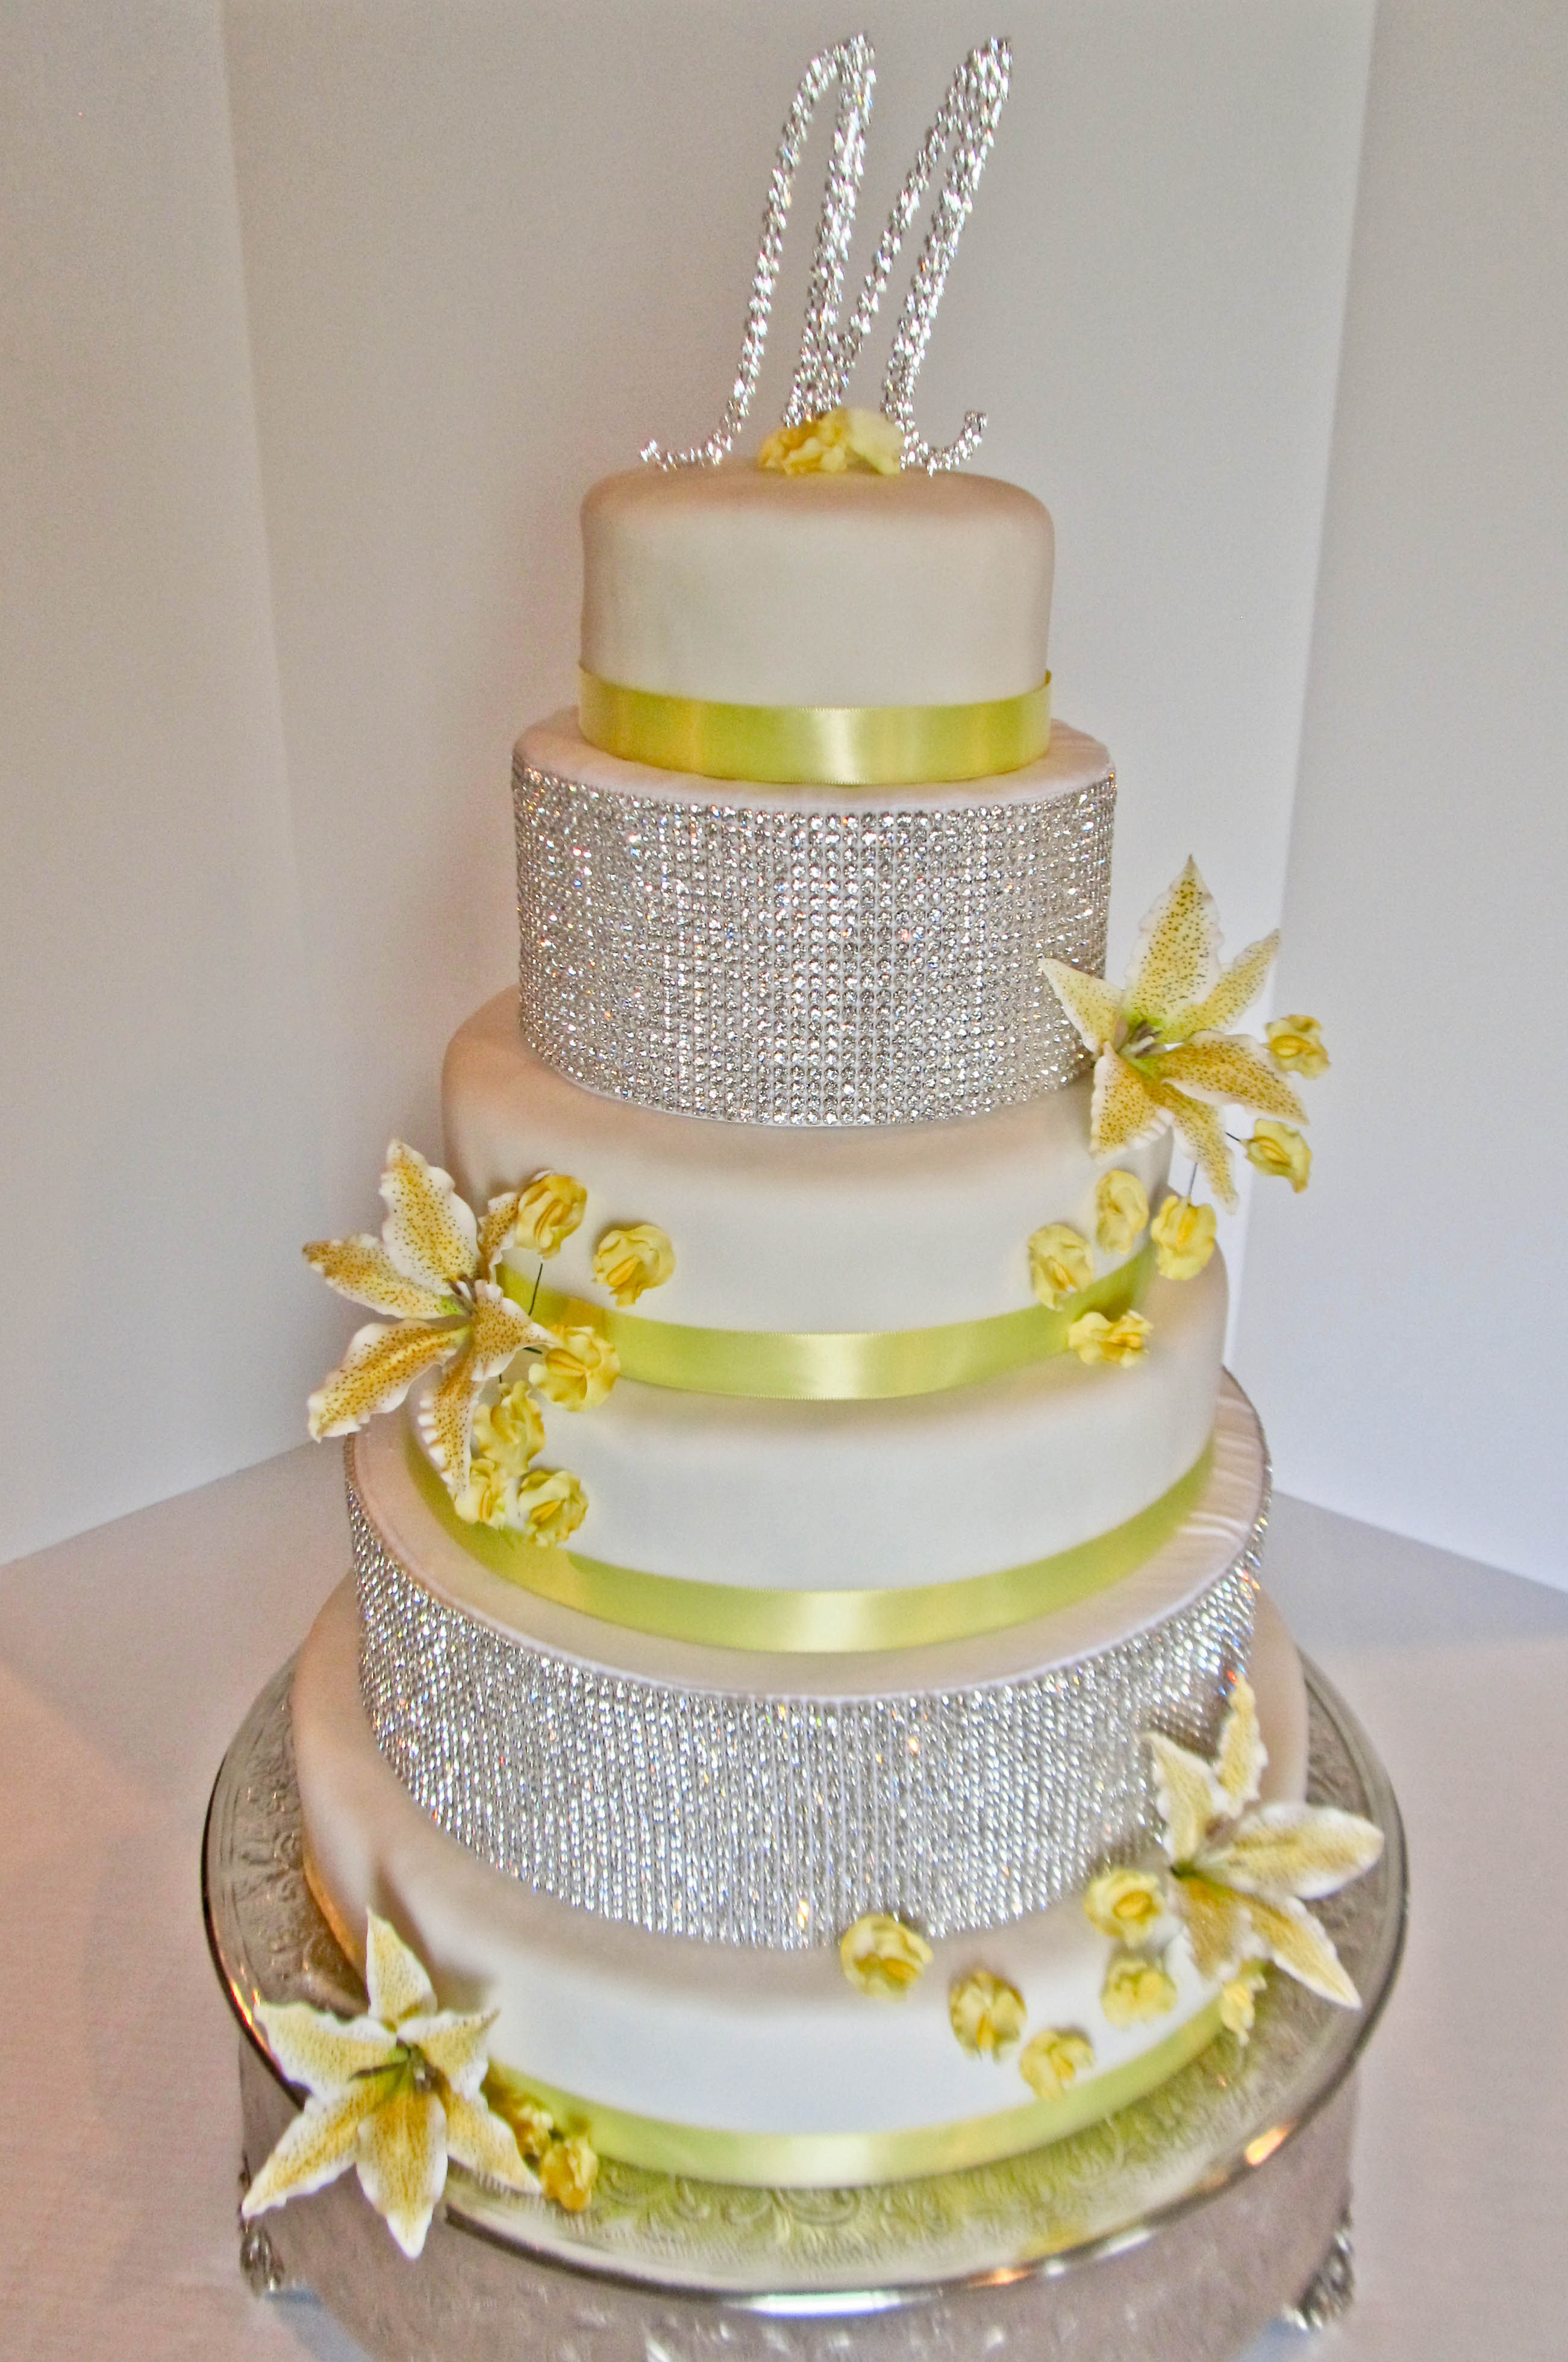 Light Yellow  White and Bling Wedding Cake   Pink Teaspoon Light Yellow  White and Bling Wedding Cake